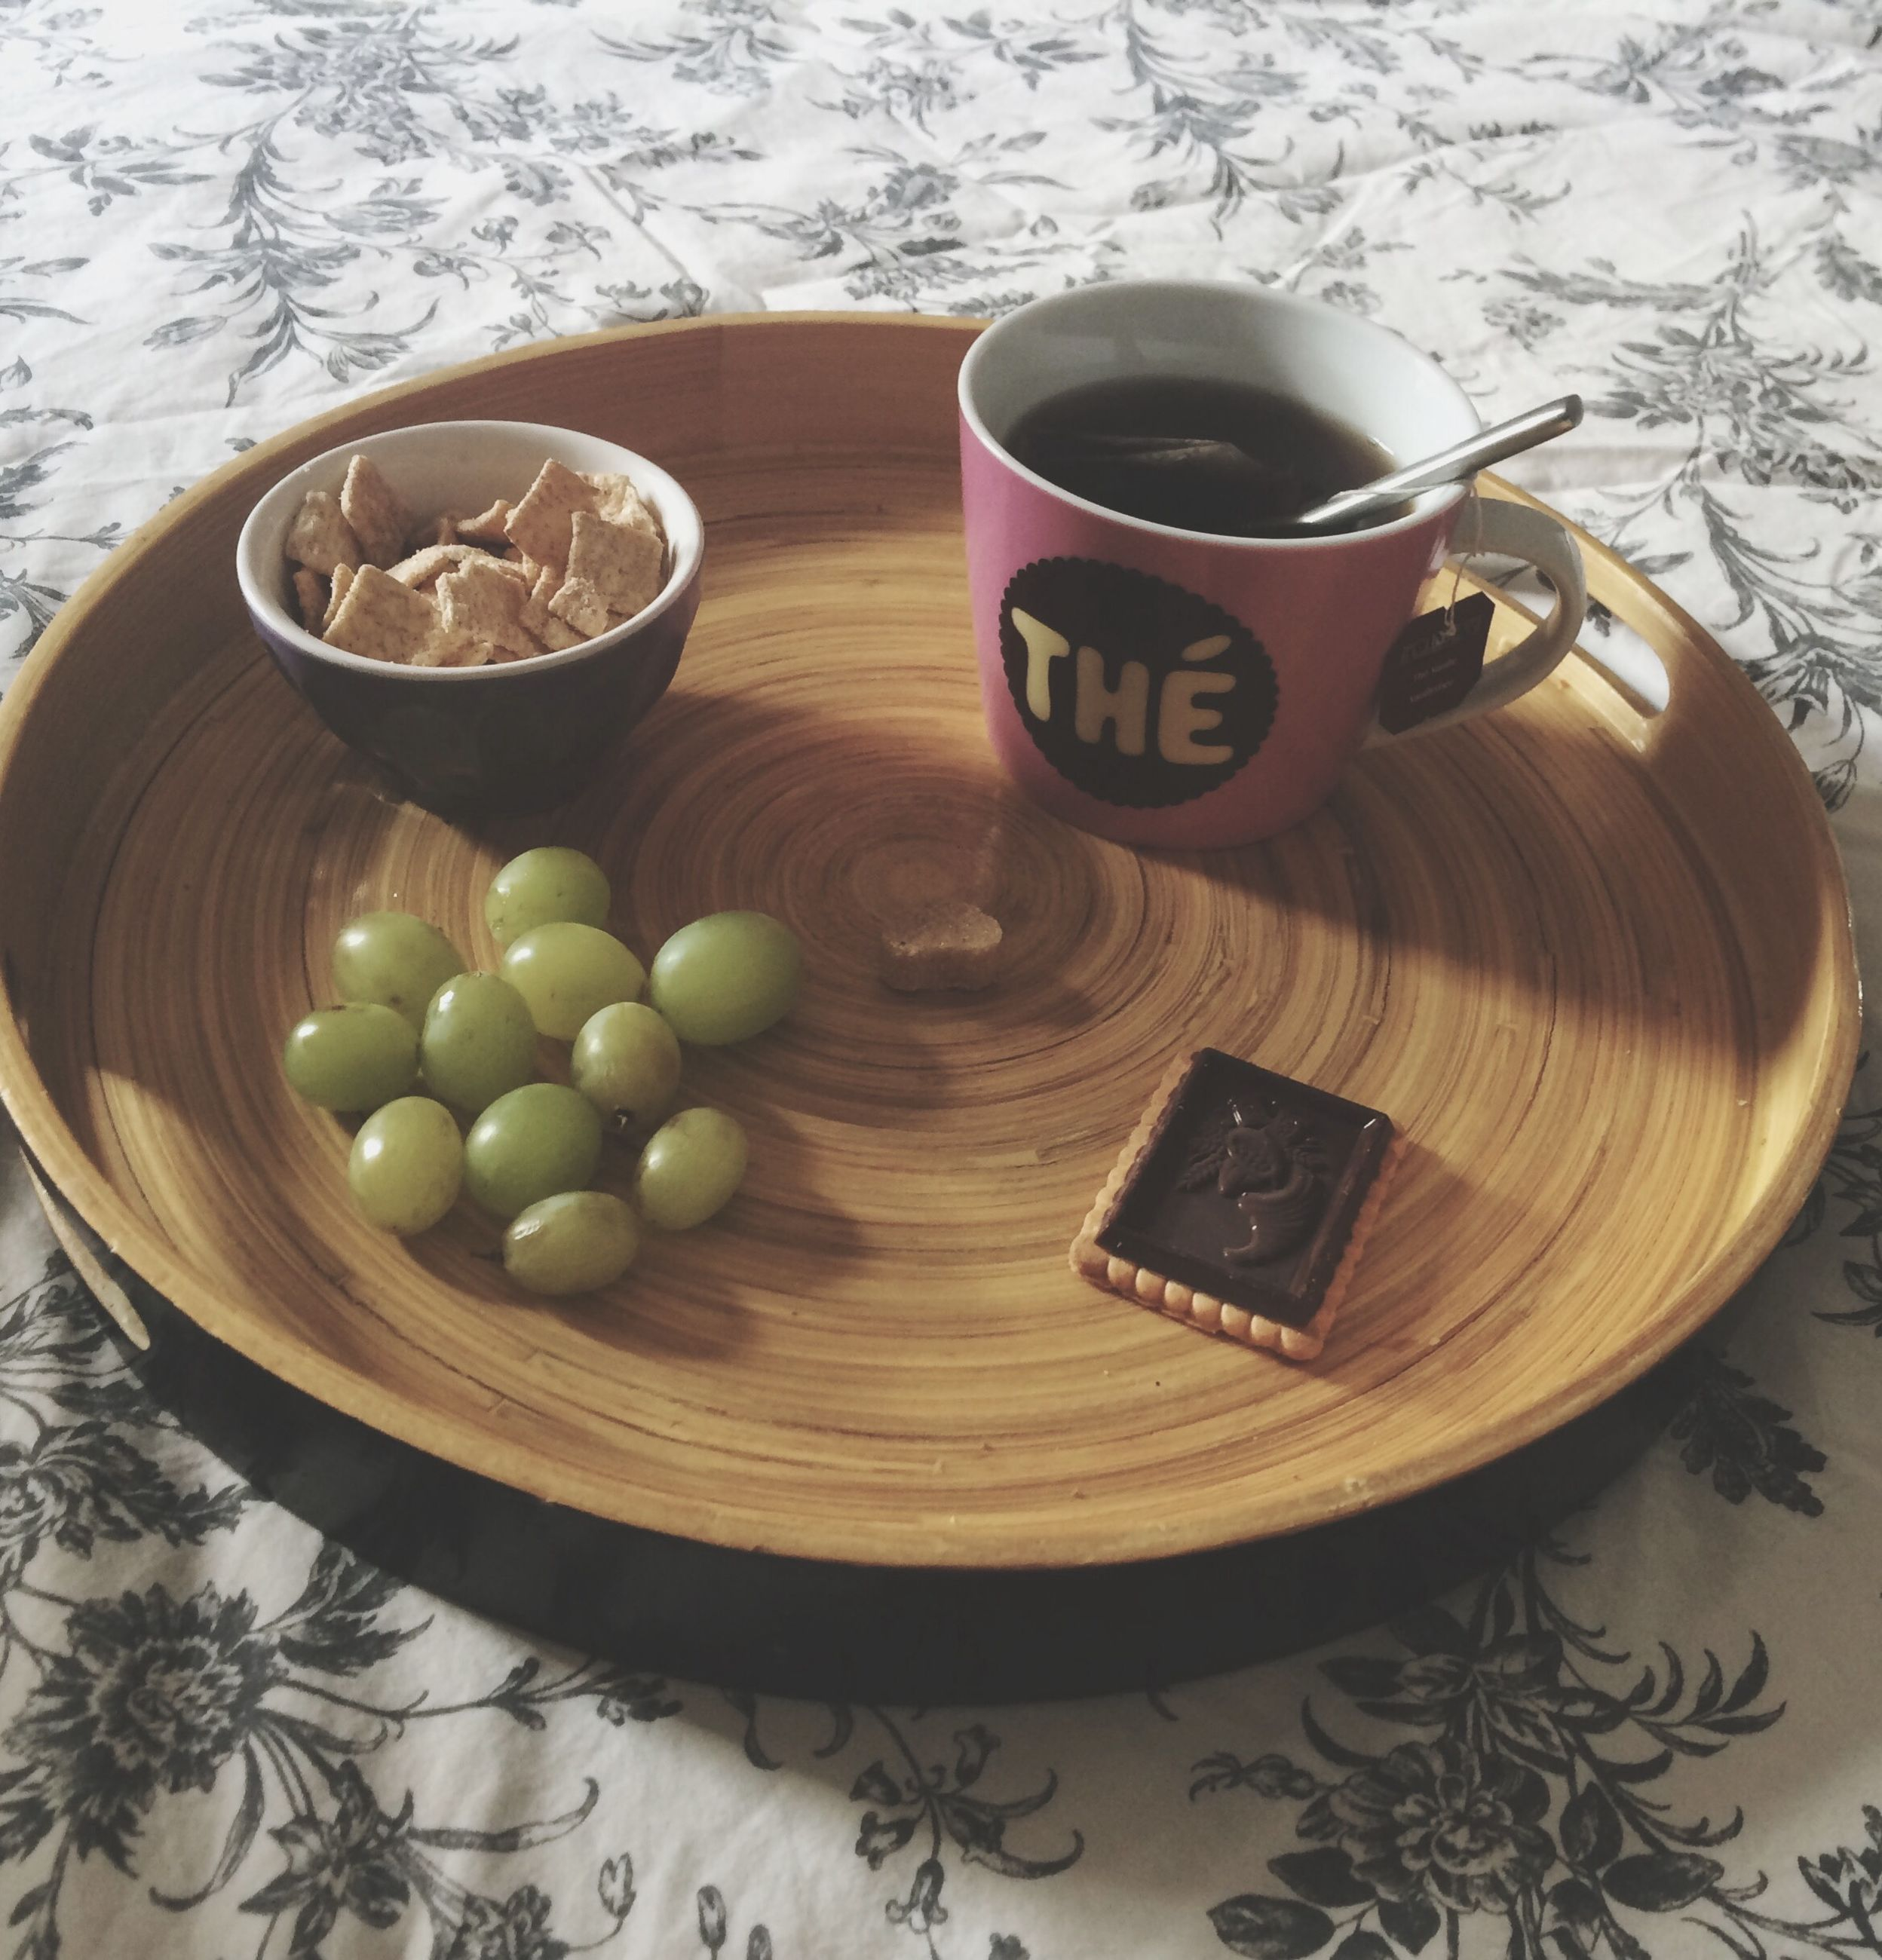 food and drink, table, freshness, food, healthy eating, still life, drink, indoors, fruit, refreshment, coffee cup, bowl, high angle view, wood - material, coffee - drink, no people, directly above, container, cup, grape